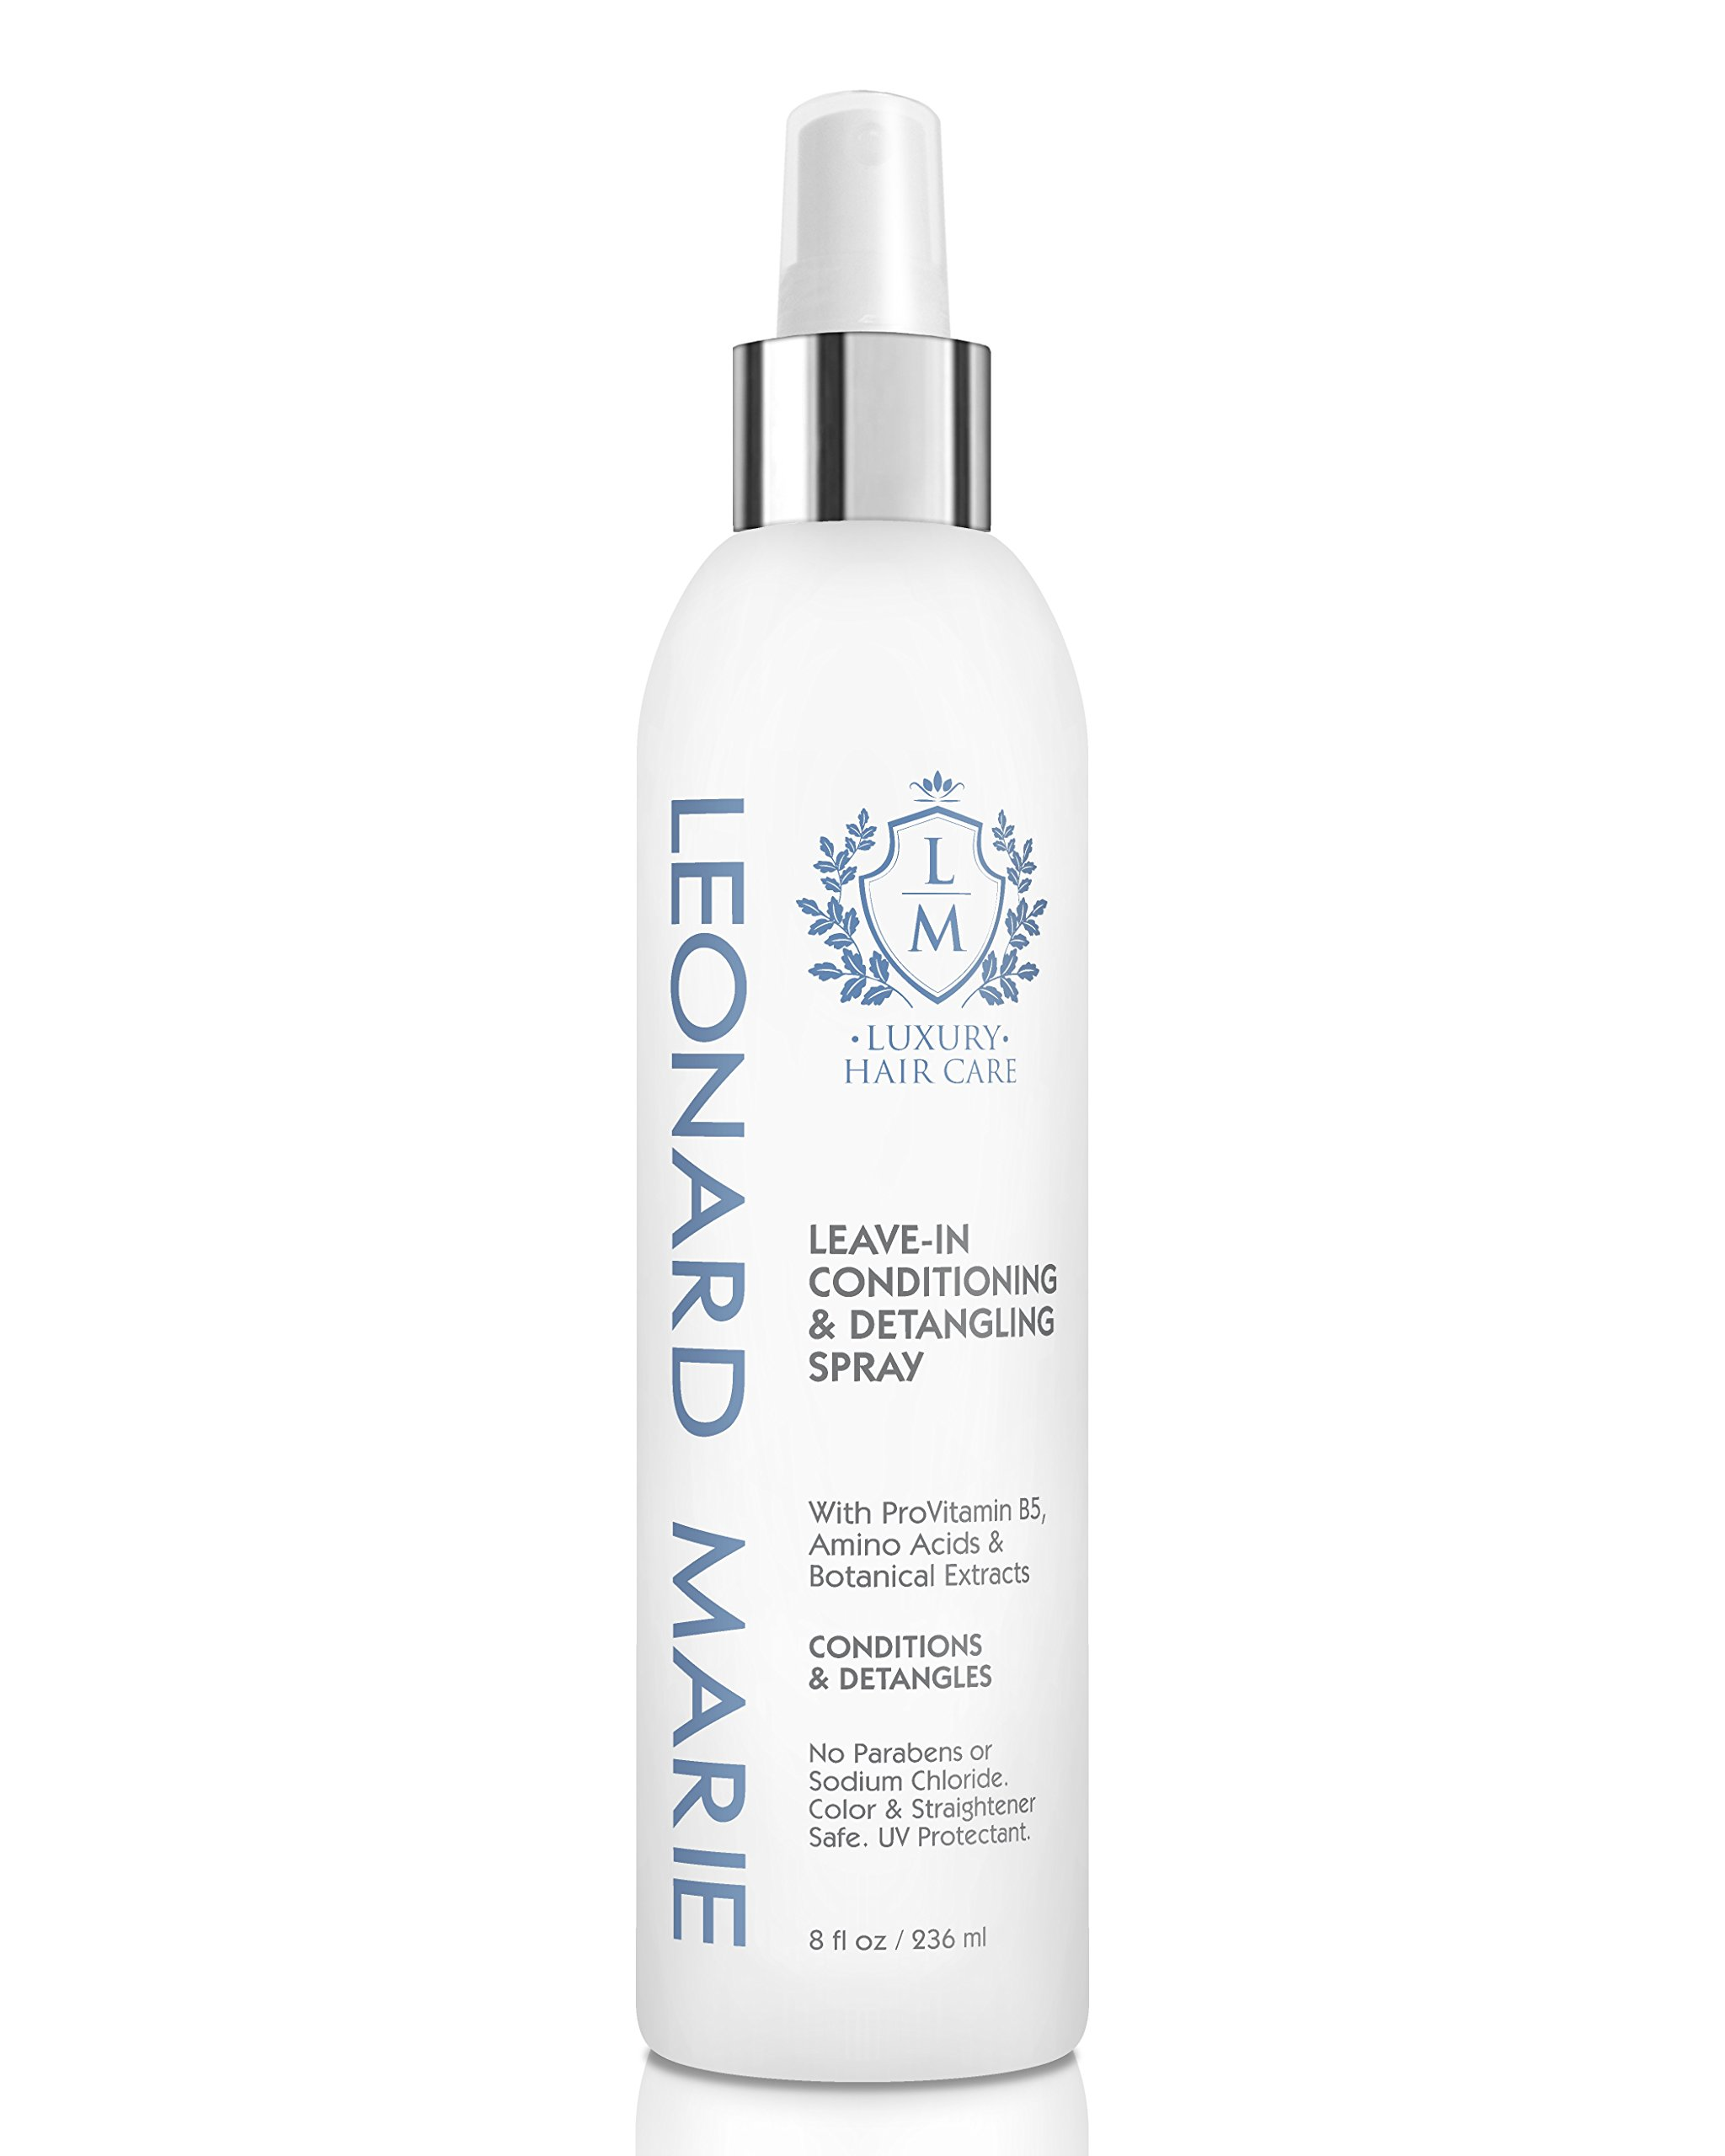 Leonard Marie Leave-In Conditioner Spray - Detangling Spray with ProVitamin B5 and Amino Acids Plus UV Protection, Safe for Color Treated Hair - Conditioning and Nourishing by Leonard Marie Hair